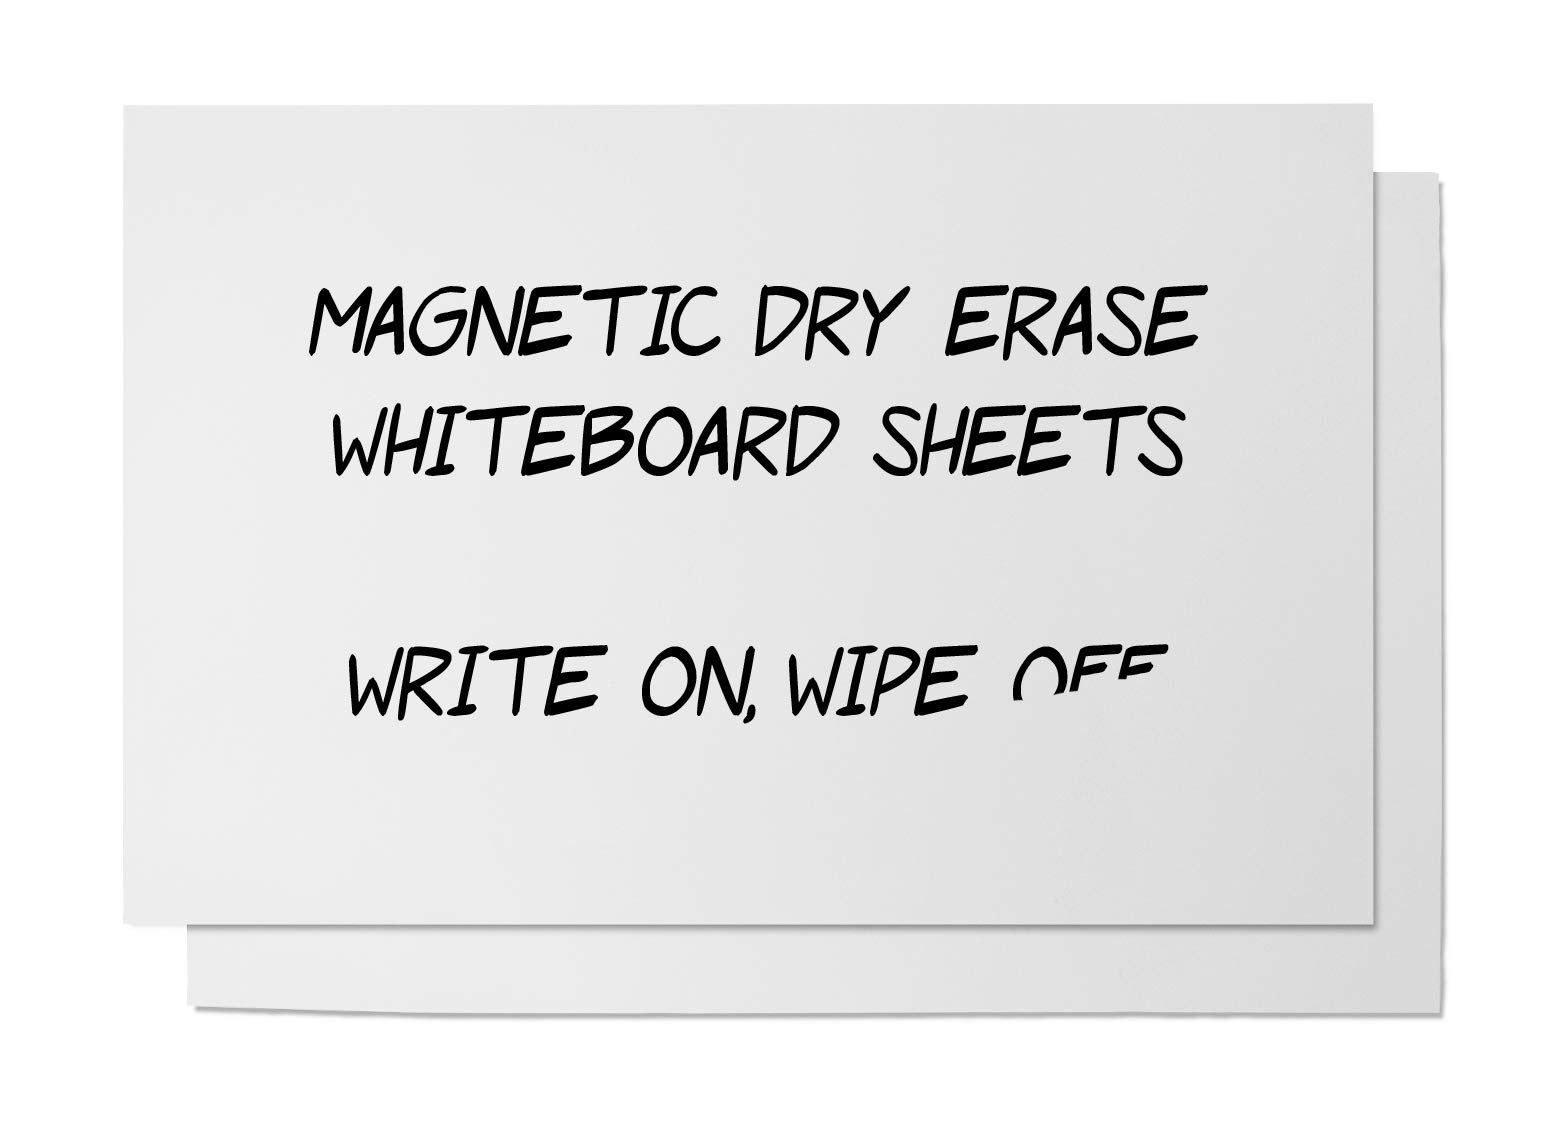 Magnetic Dry Erase Sheet - 2-Pack Magnet Whiteboard Sheet for Kitchen Refrigerator, Dry Erase Board with Magnetized Back, White, Large, 17 x 11 inches